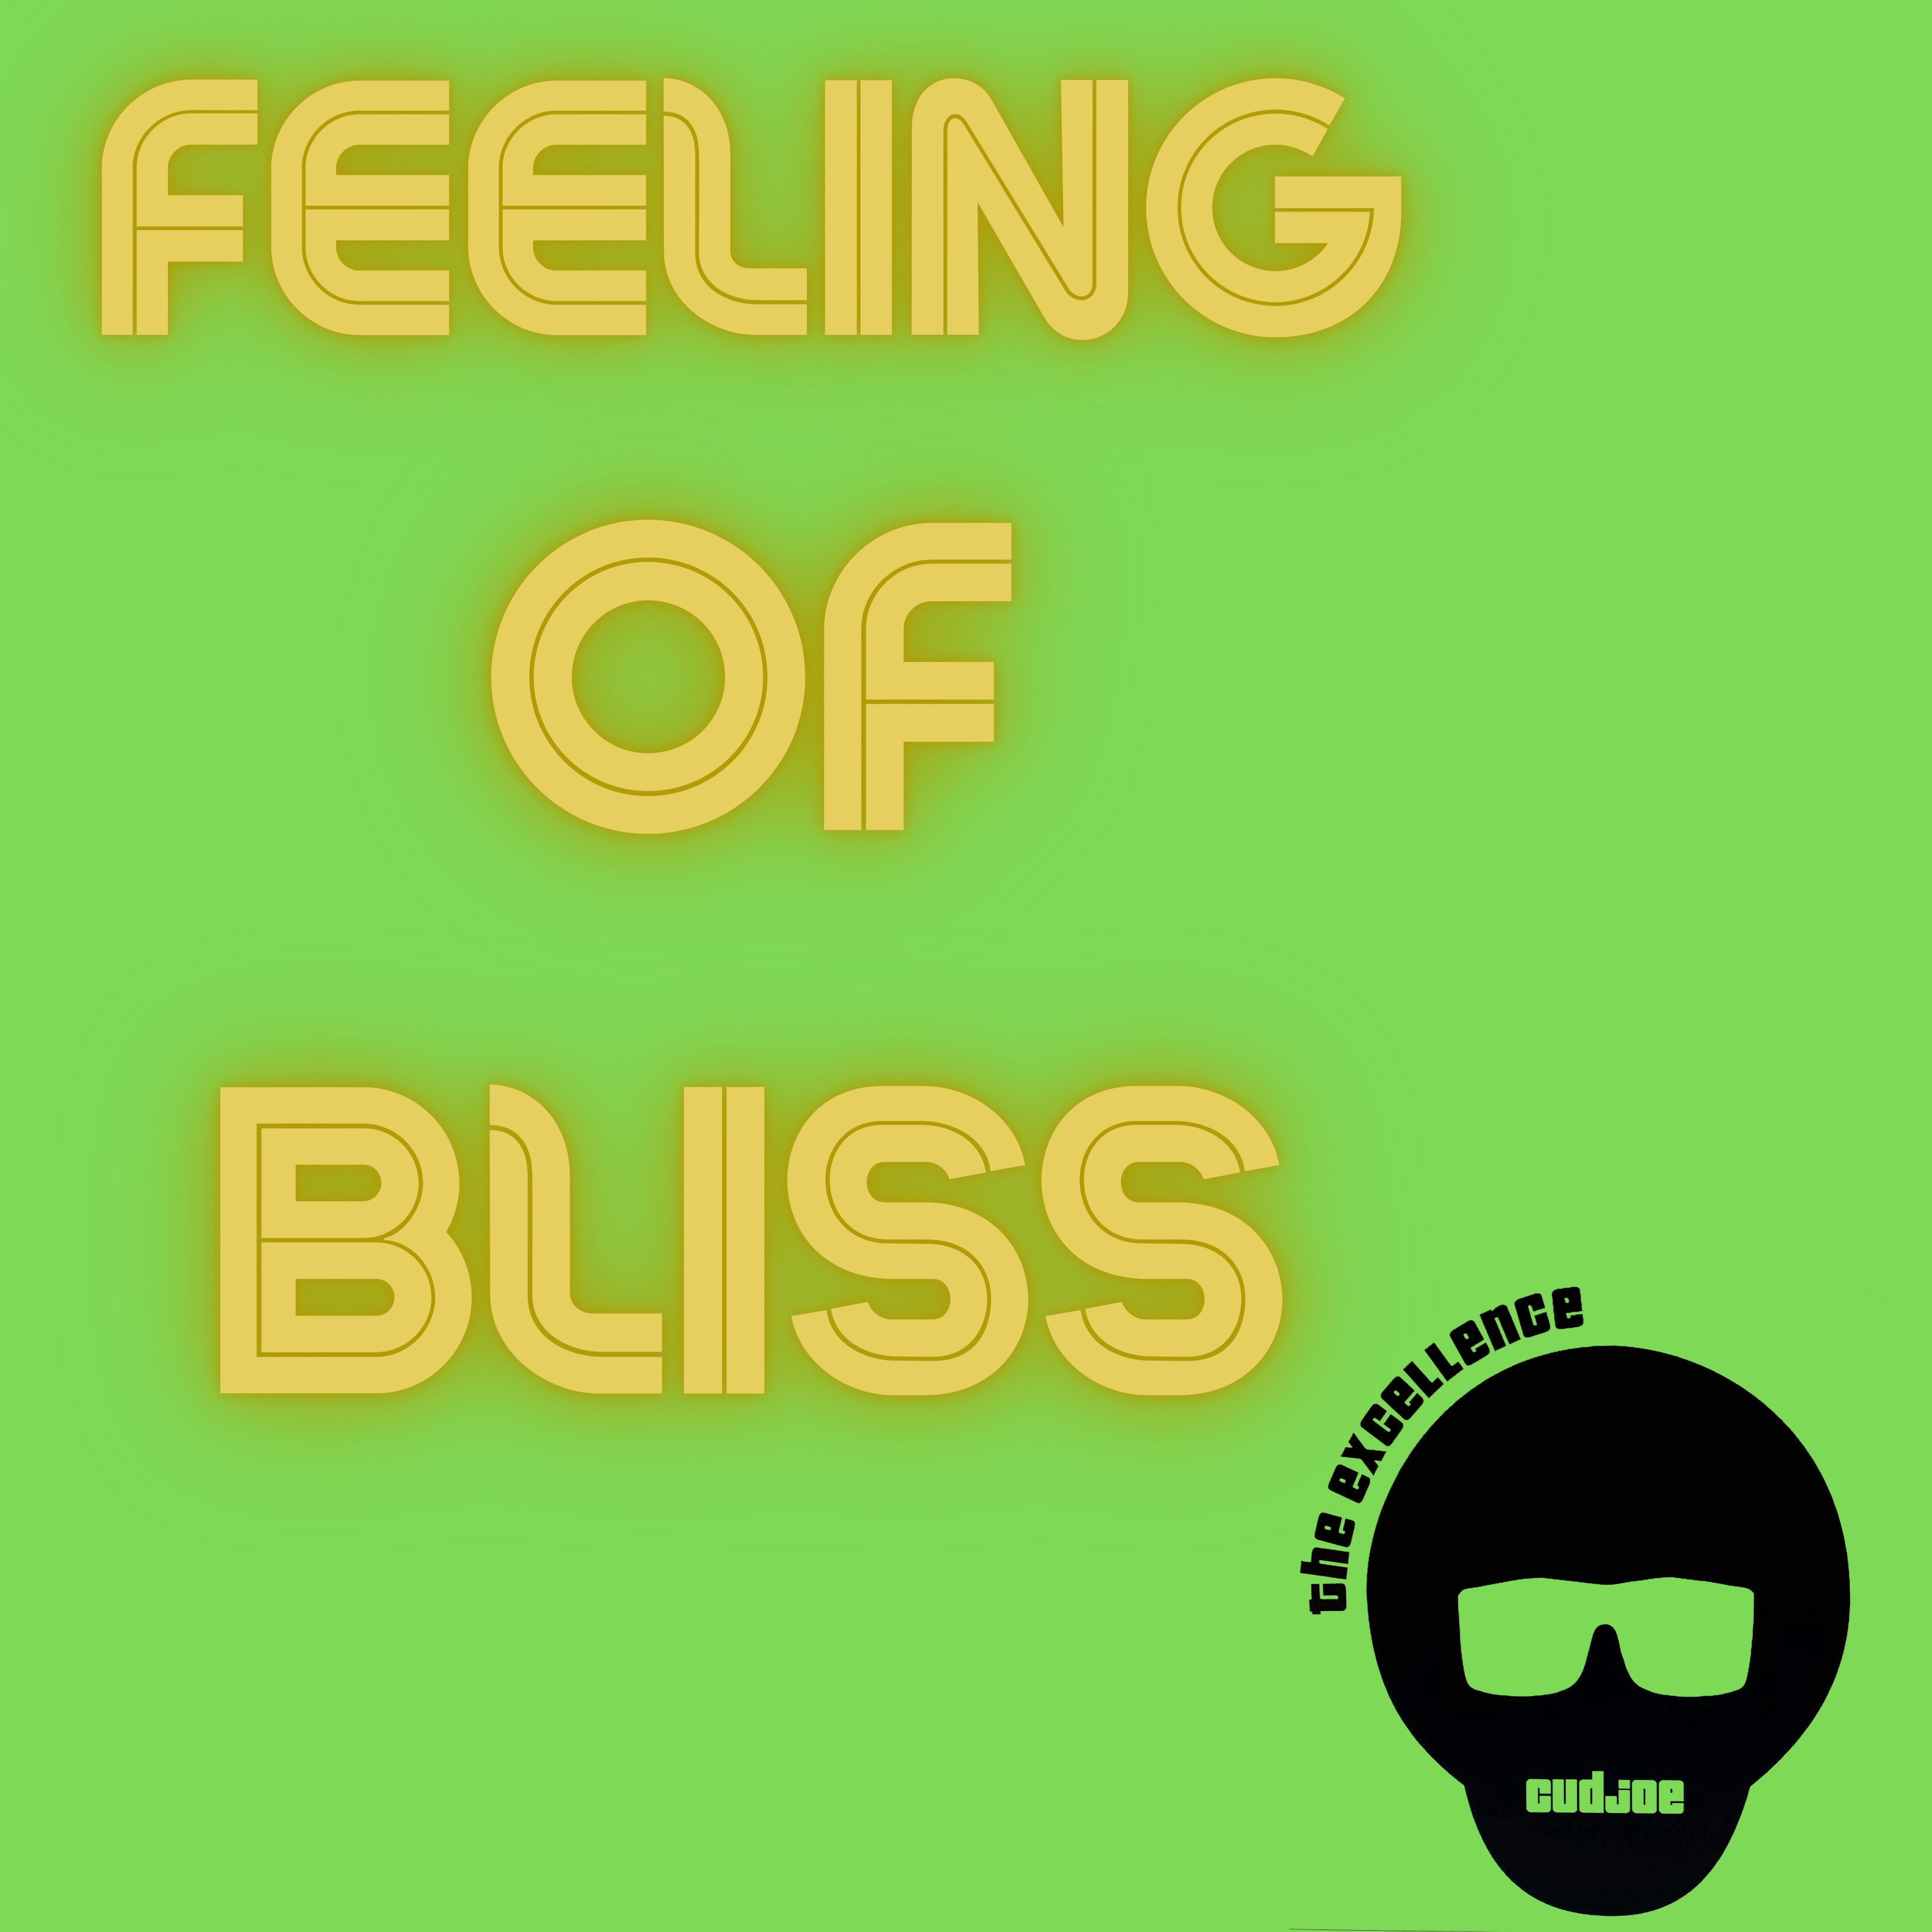 Art for Feeling of Bliss by Cudjoe The Excellence